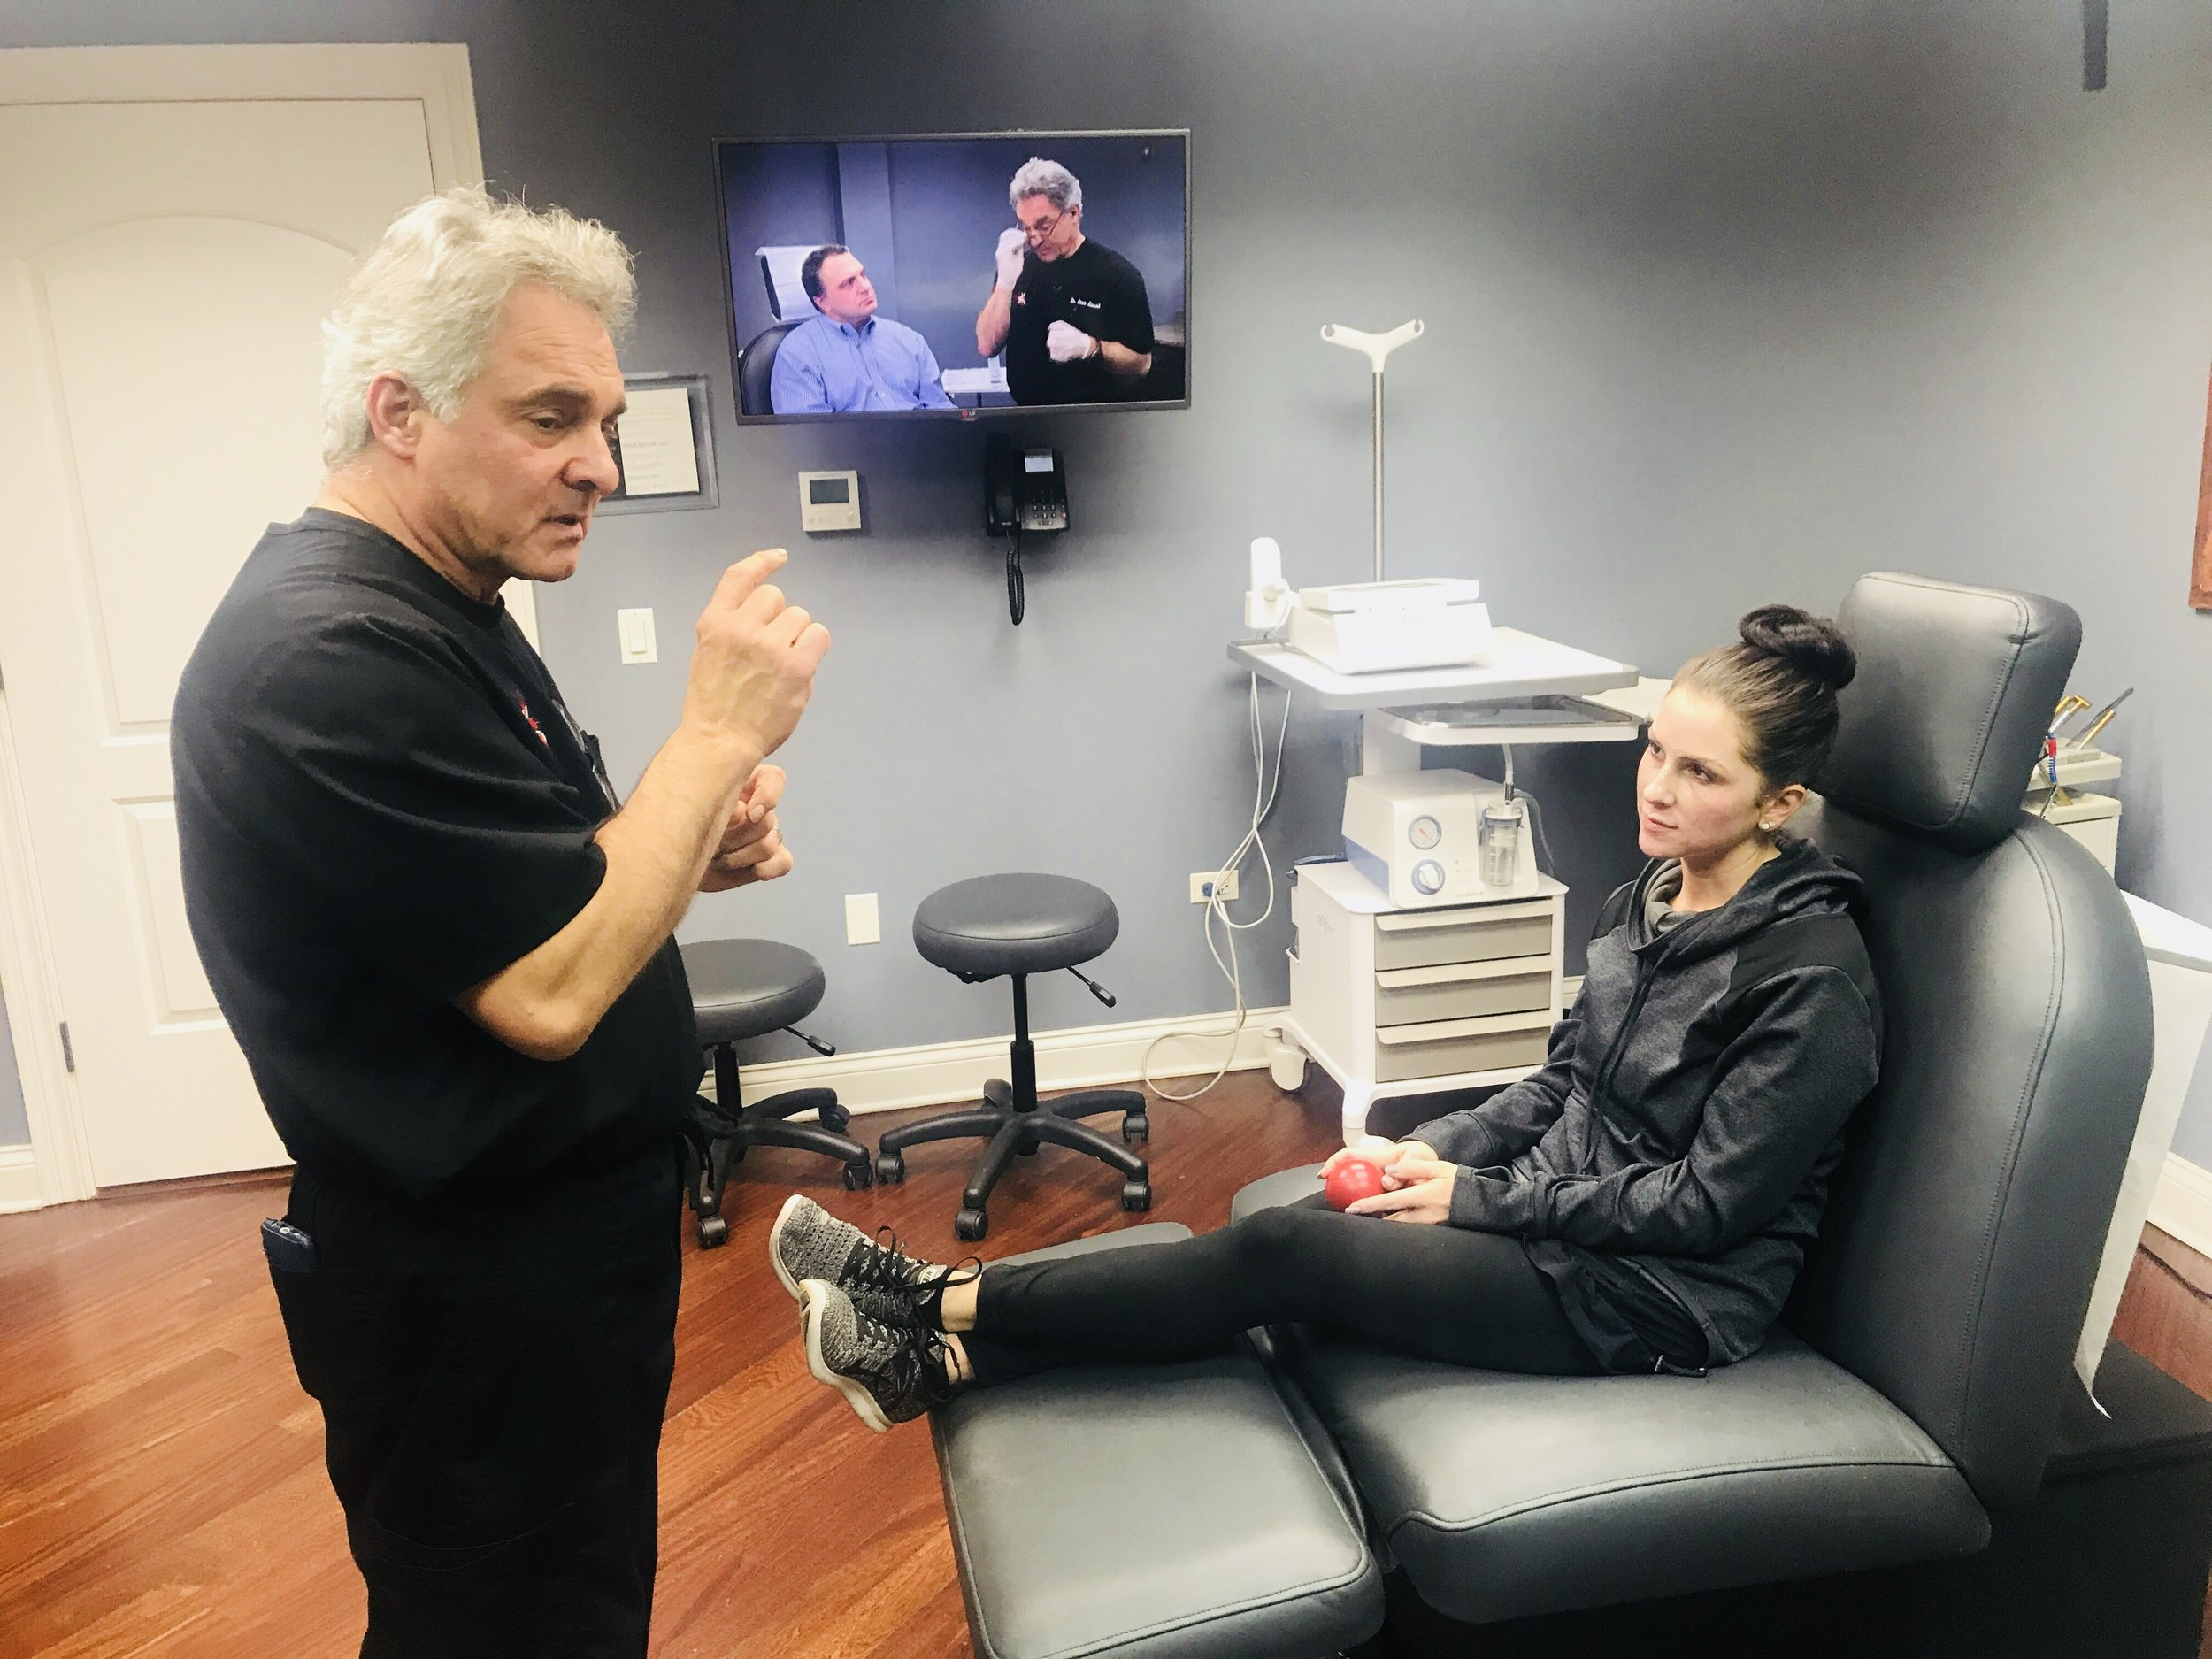 I recently had my first trip to see   Dr. Kovak   at his Oakbrook location and I am so happy with the results! The office is welcoming, comfortable, relaxing, and the staff is amazing! I signed up to try the   Halo laser treatment   which for me is great as I have a TON of freckles and some brown spots thanks to my Irish skin ;)  First, I filled out a bunch of paper work for good measure and then went onto get consulted by Dr. Kovak just to make sure I was a good fit for this procedure. After he decided that I would be a good client for this, numbing cream was applied and I had to let that sit for about 45 minutes before the laser treatment.